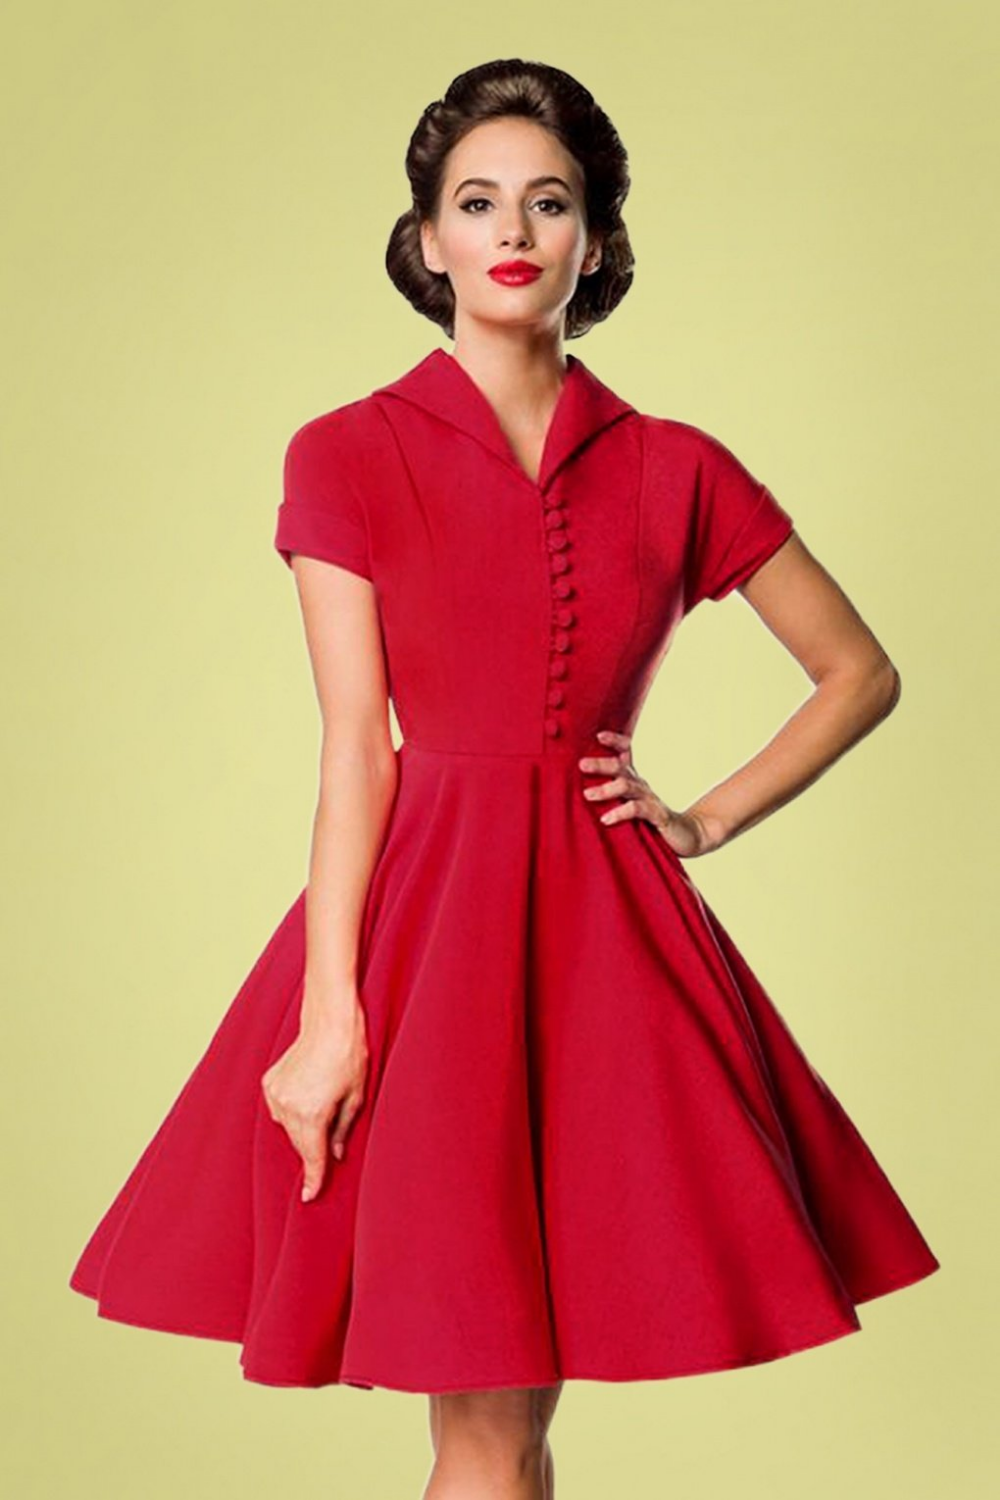 40s Valencia Swing Dress In Deep Red Swing Dress Vintage Inspired Outfits Shirtwaist Dress [ 1500 x 1000 Pixel ]